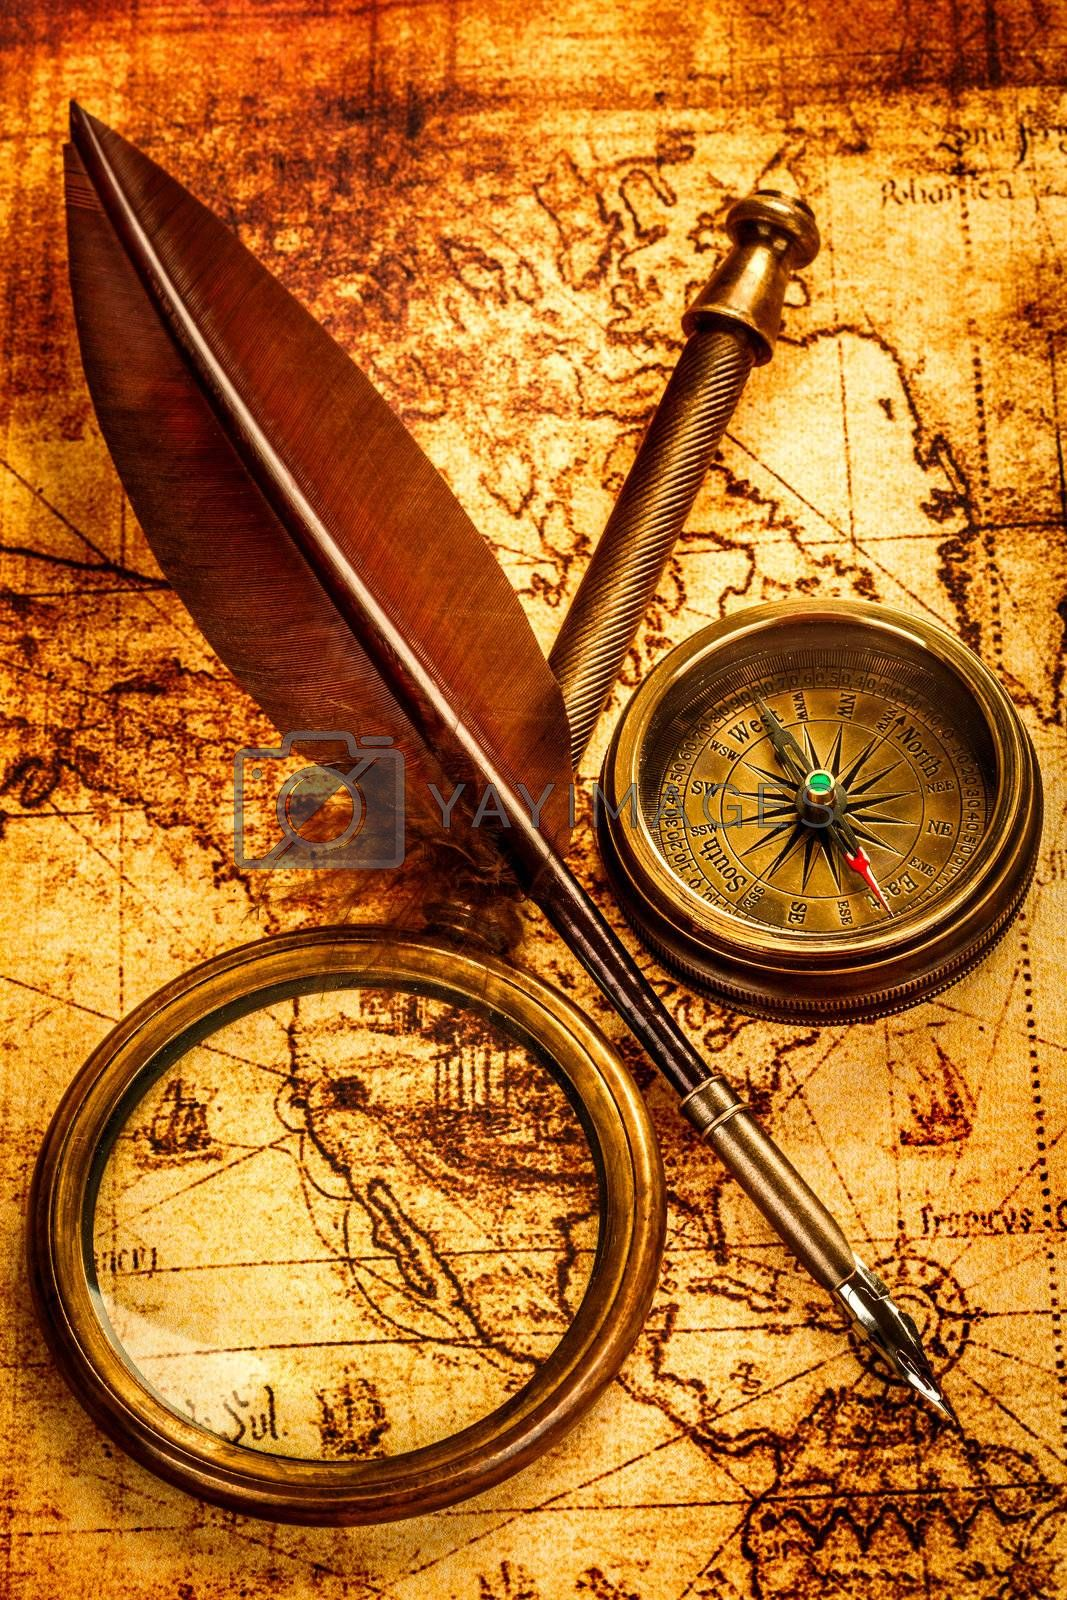 Vintage magnifying glass, compass and goose quill pen lying on an old map.